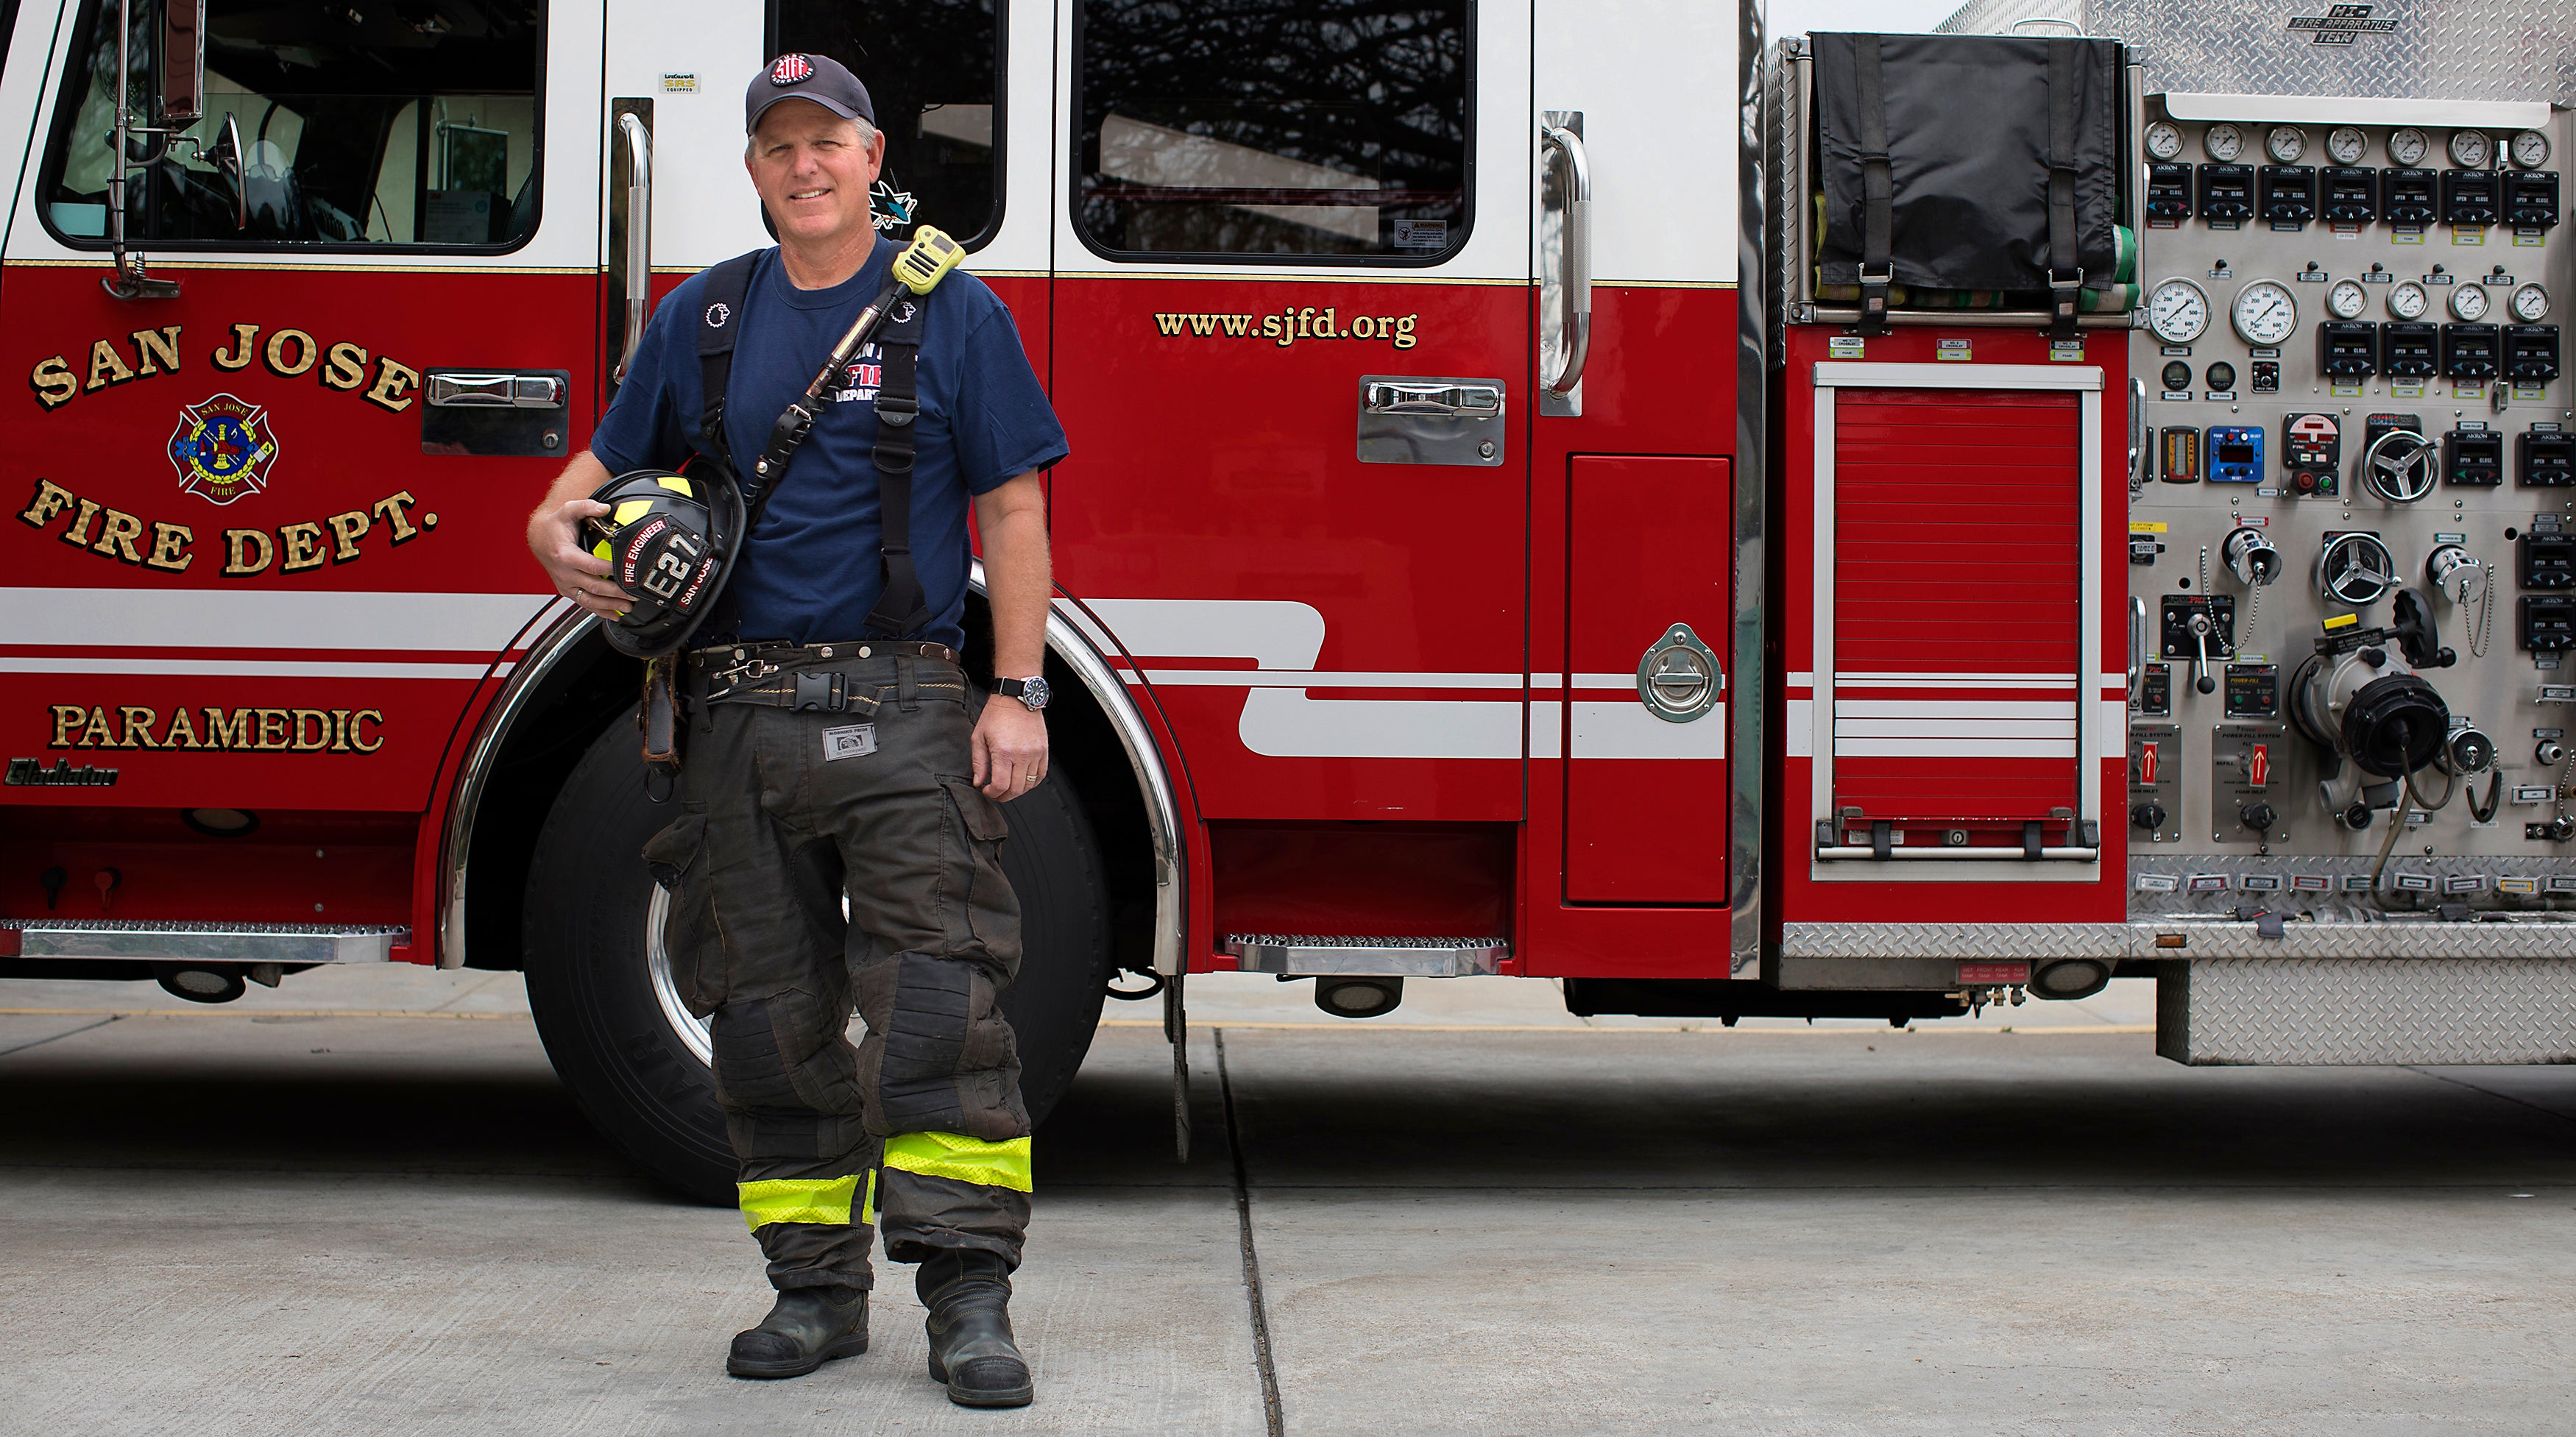 Dave Scocca: Firefighter, First Responder and Friend